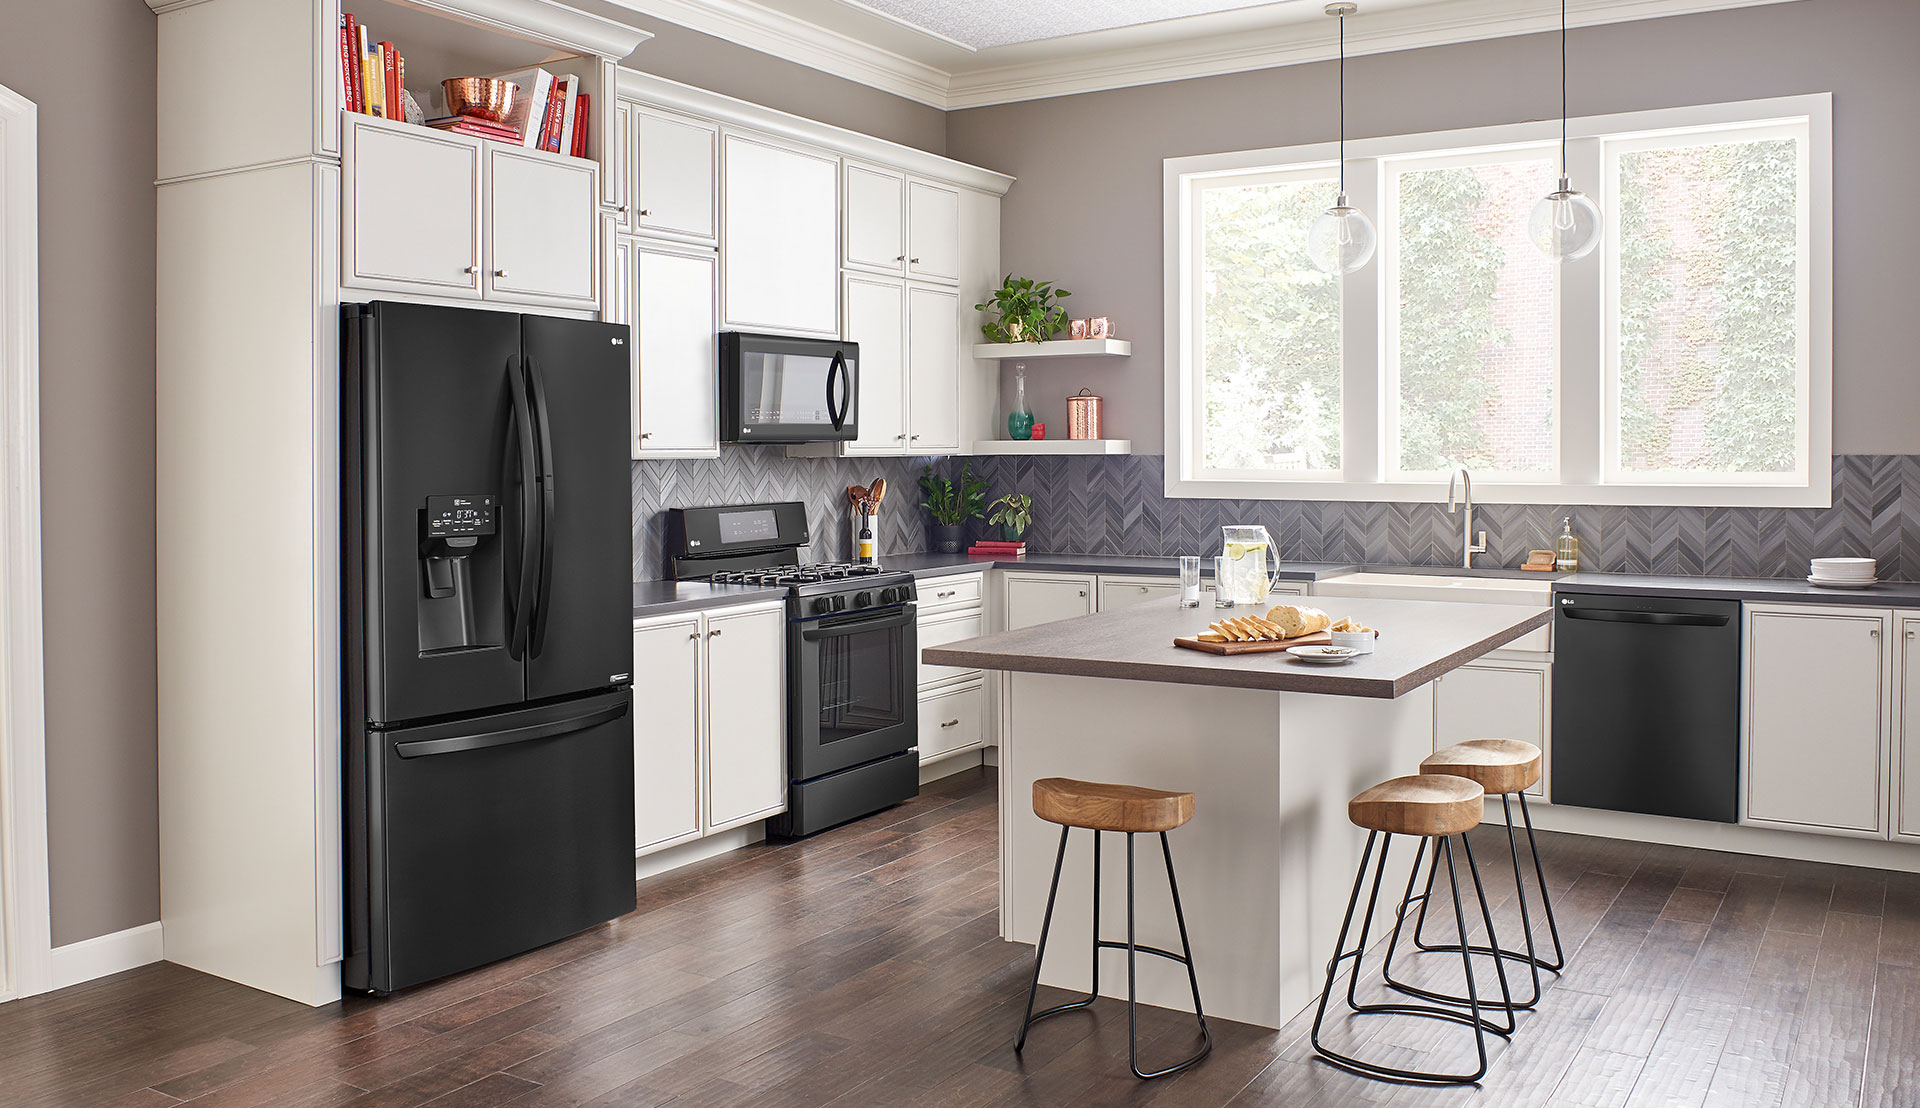 Stainless Steel And Black Appliances What Color Kitchen Counters